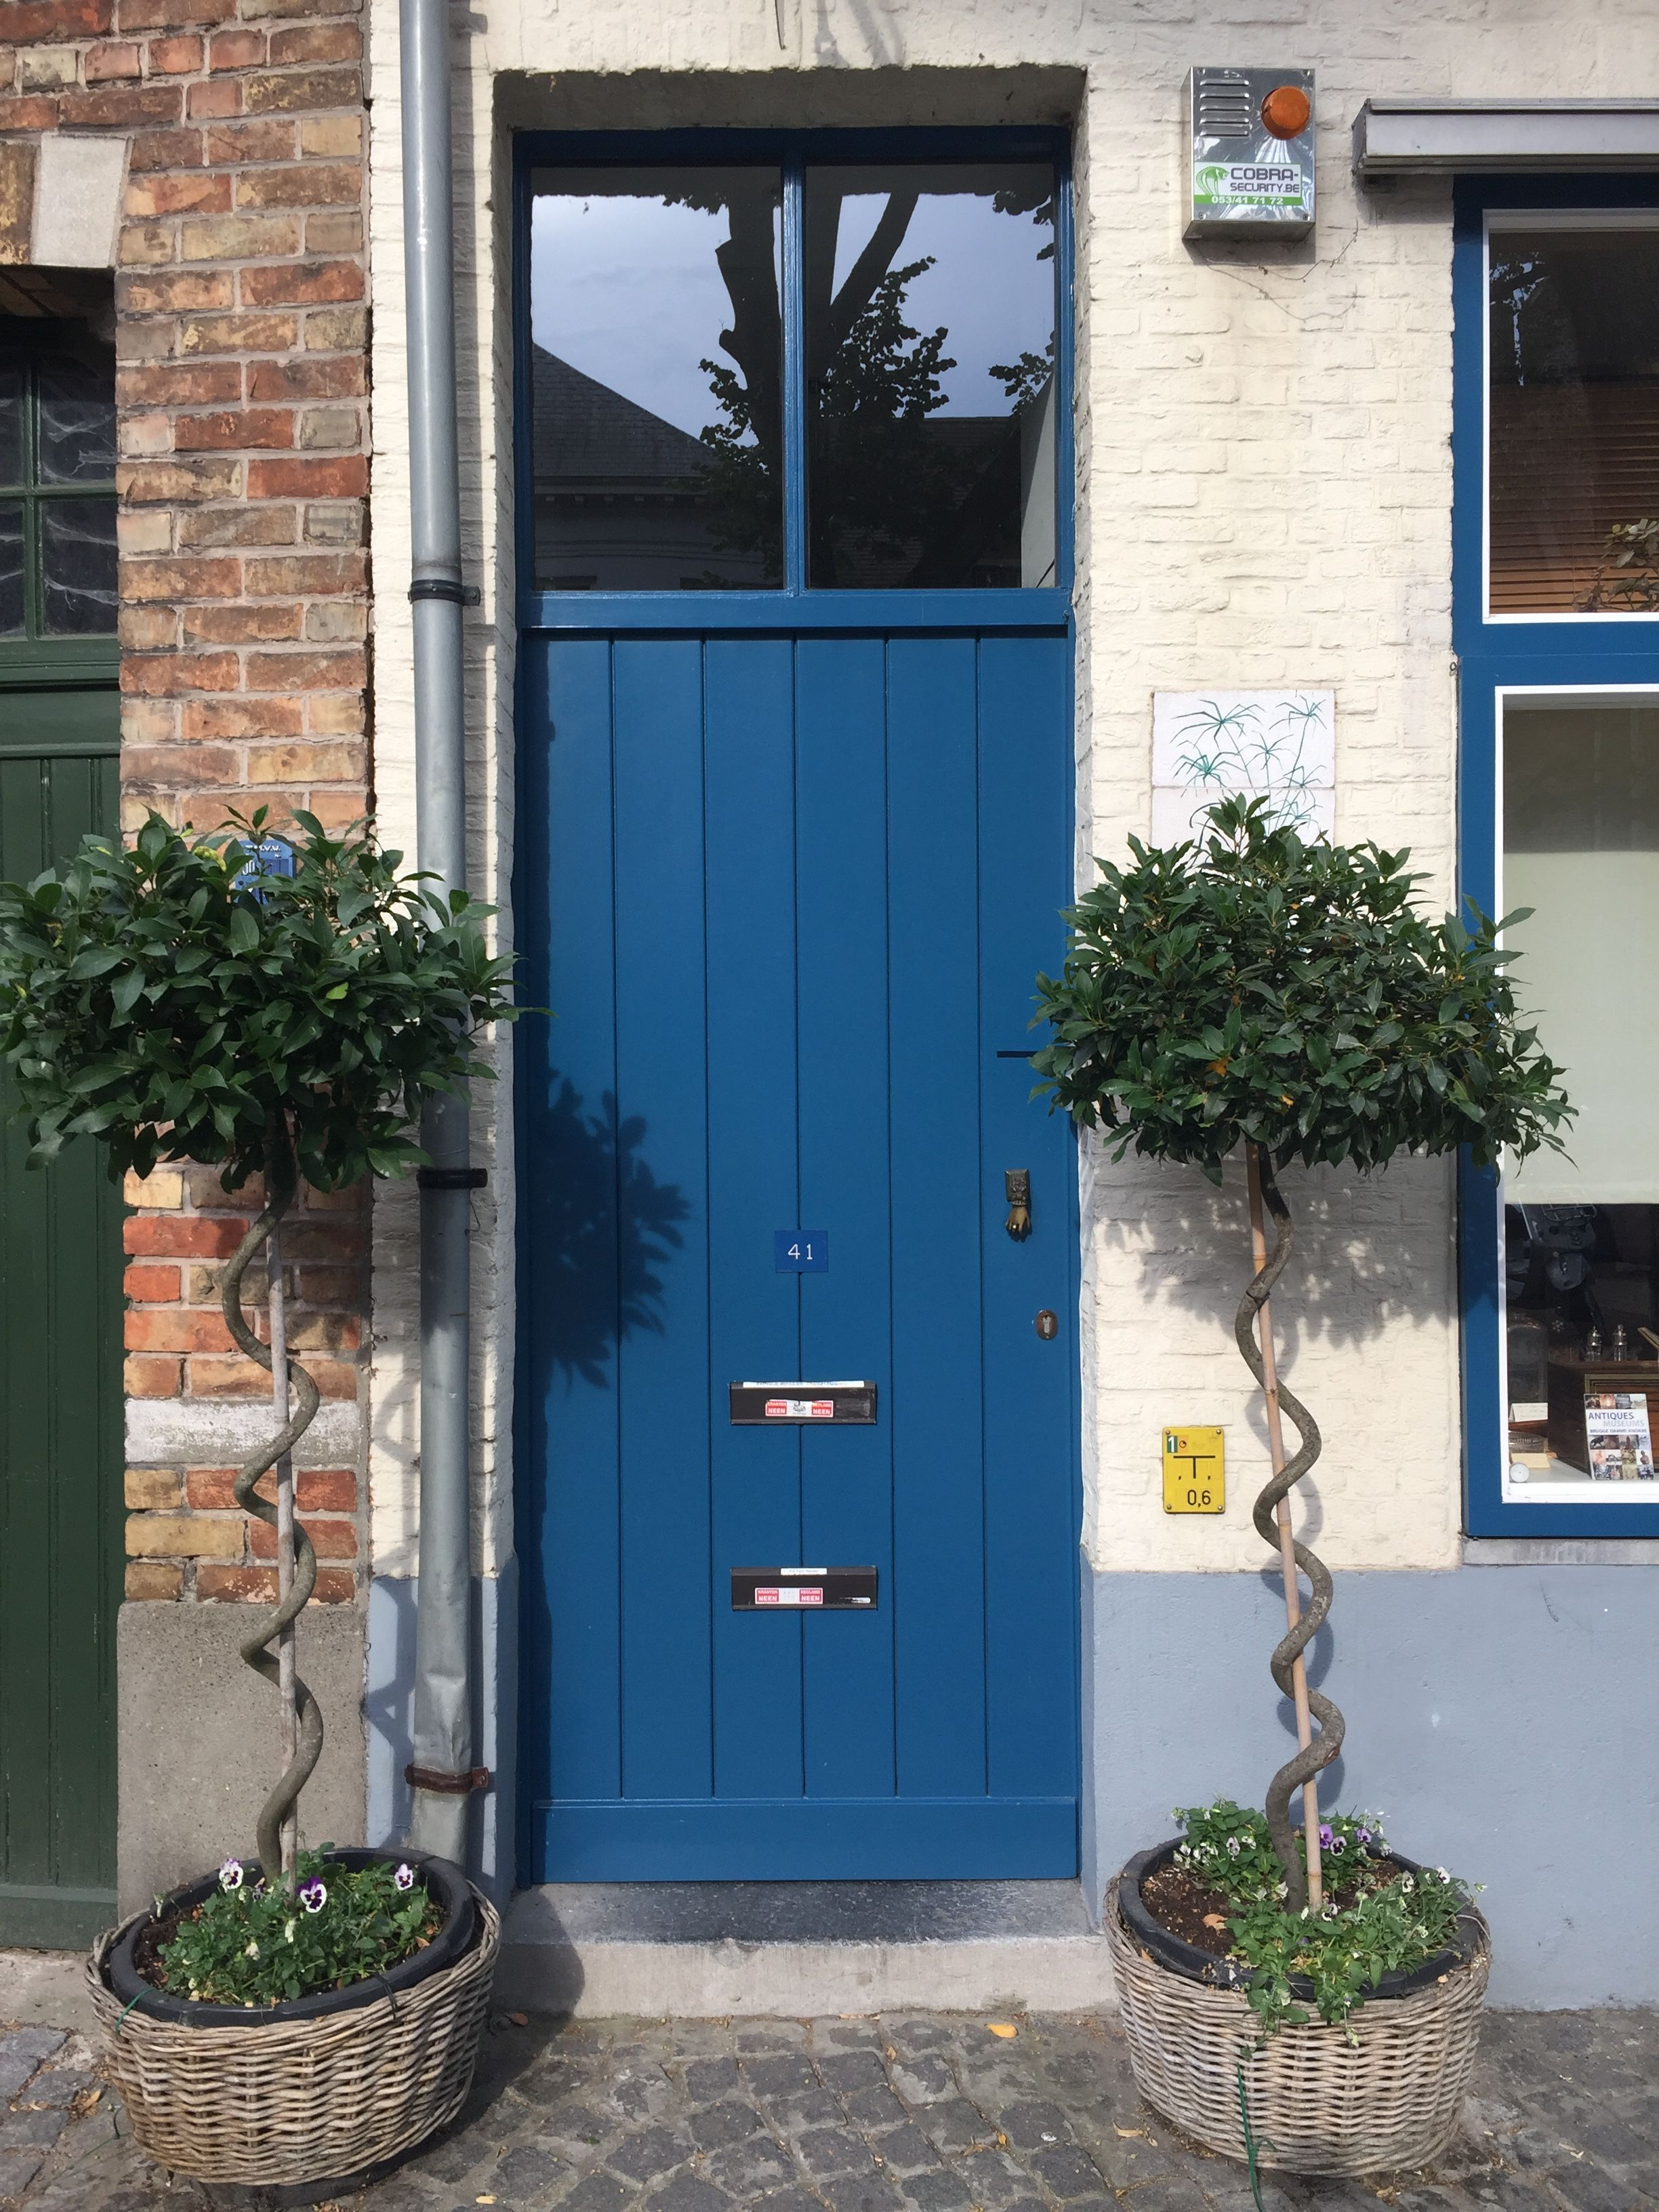 Blue Door In Brugge 27 07 2018 Blue Door Doors Outdoor Decor